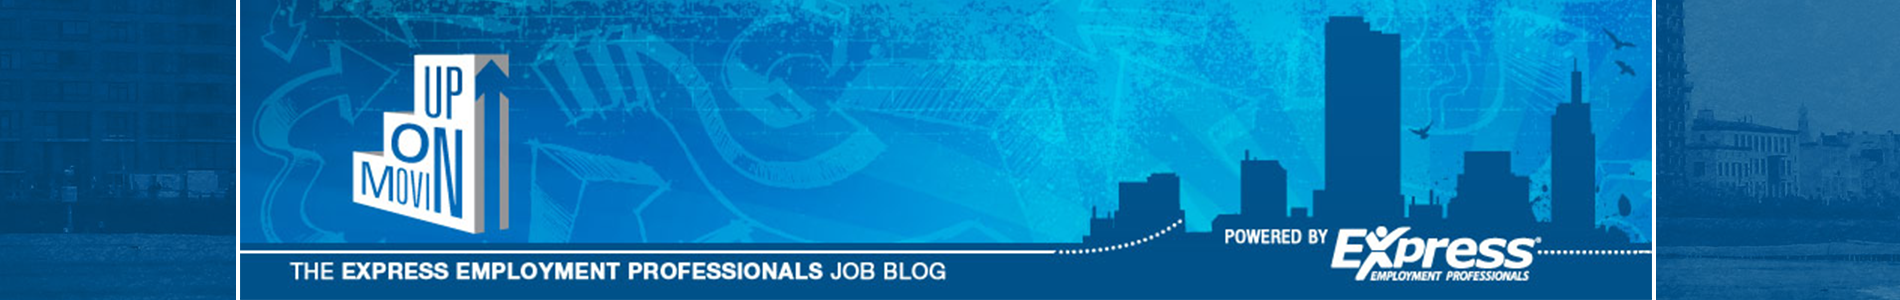 Job Seekers Blog Banner